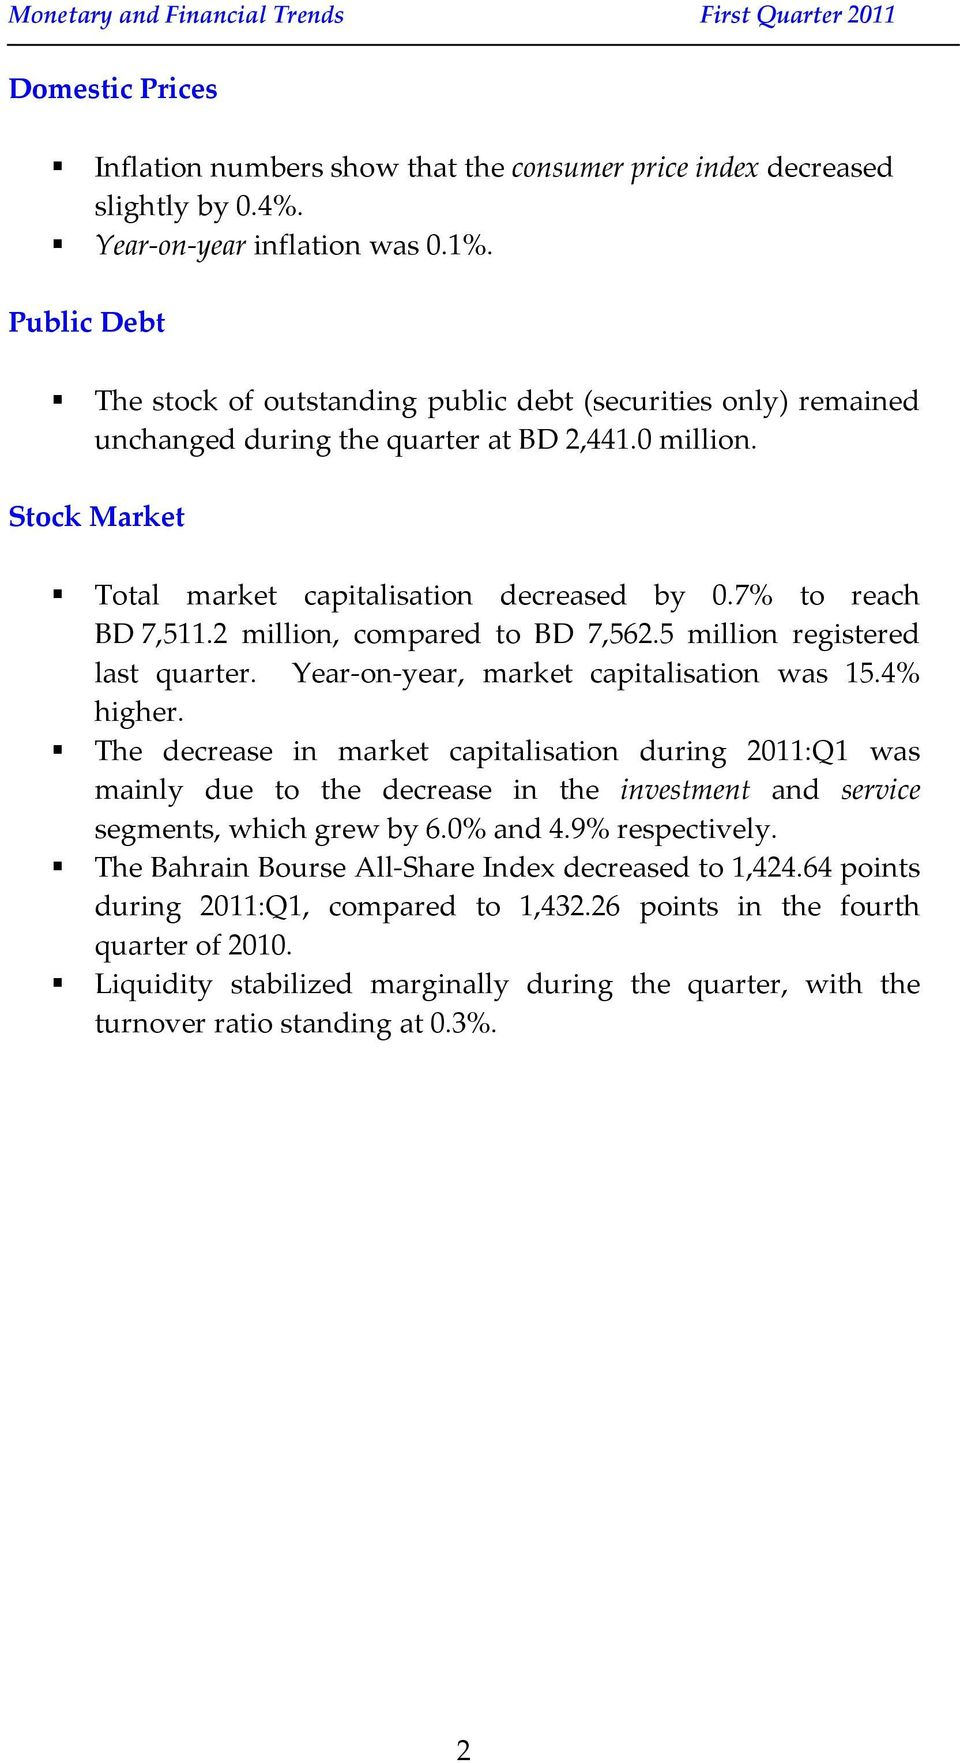 7% to reach BD 7,511.2 million, compared to BD 7,562.5 million registered last quarter. Year-on-year, market capitalisation was 15.4% higher.